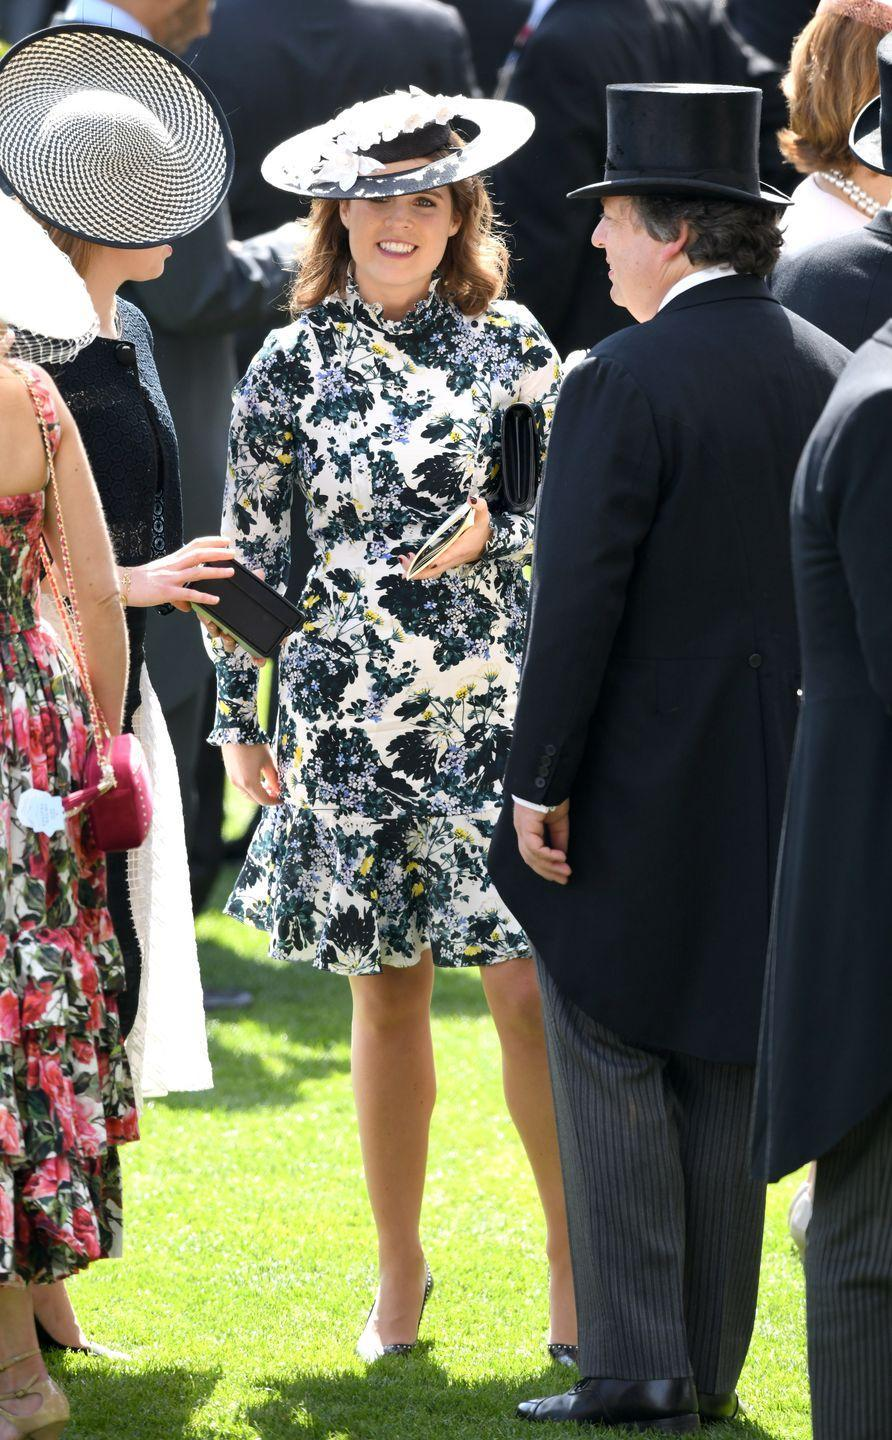 """<p>Eugenie knows how to garner attention with her fashion choices. But in 2018, she went for classic ladylike details with a silk floral dress that pays subtle homage to her grandmother, Queen Elizabeth. Apparently, the designer's inspiration was the <a href=""""https://www.goodhousekeeping.com/beauty/fashion/a21763903/princess-eugenie-royal-ascot-queen-elizabeth-outfit/"""" rel=""""nofollow noopener"""" target=""""_blank"""" data-ylk=""""slk:Queen's own 1950's high necklines, button details, and flounced hem"""" class=""""link rapid-noclick-resp"""">Queen's own 1950's high necklines, button details, and flounced hem</a>. </p>"""